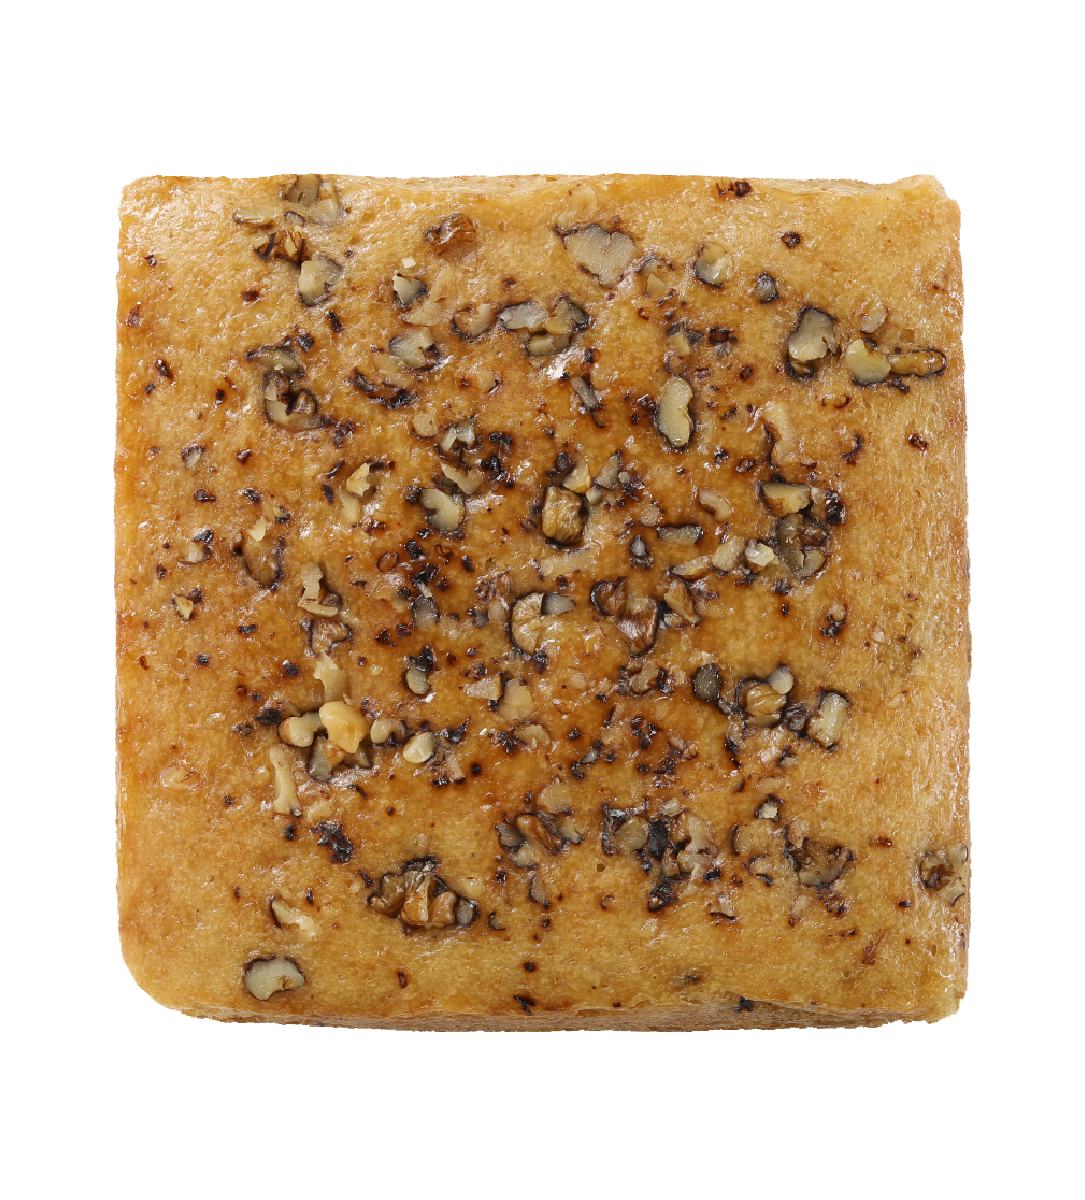 Vegan Vanilla and Walnut Tea Cake is made with Wholesome ingredients & has a nutty, earthy taste.